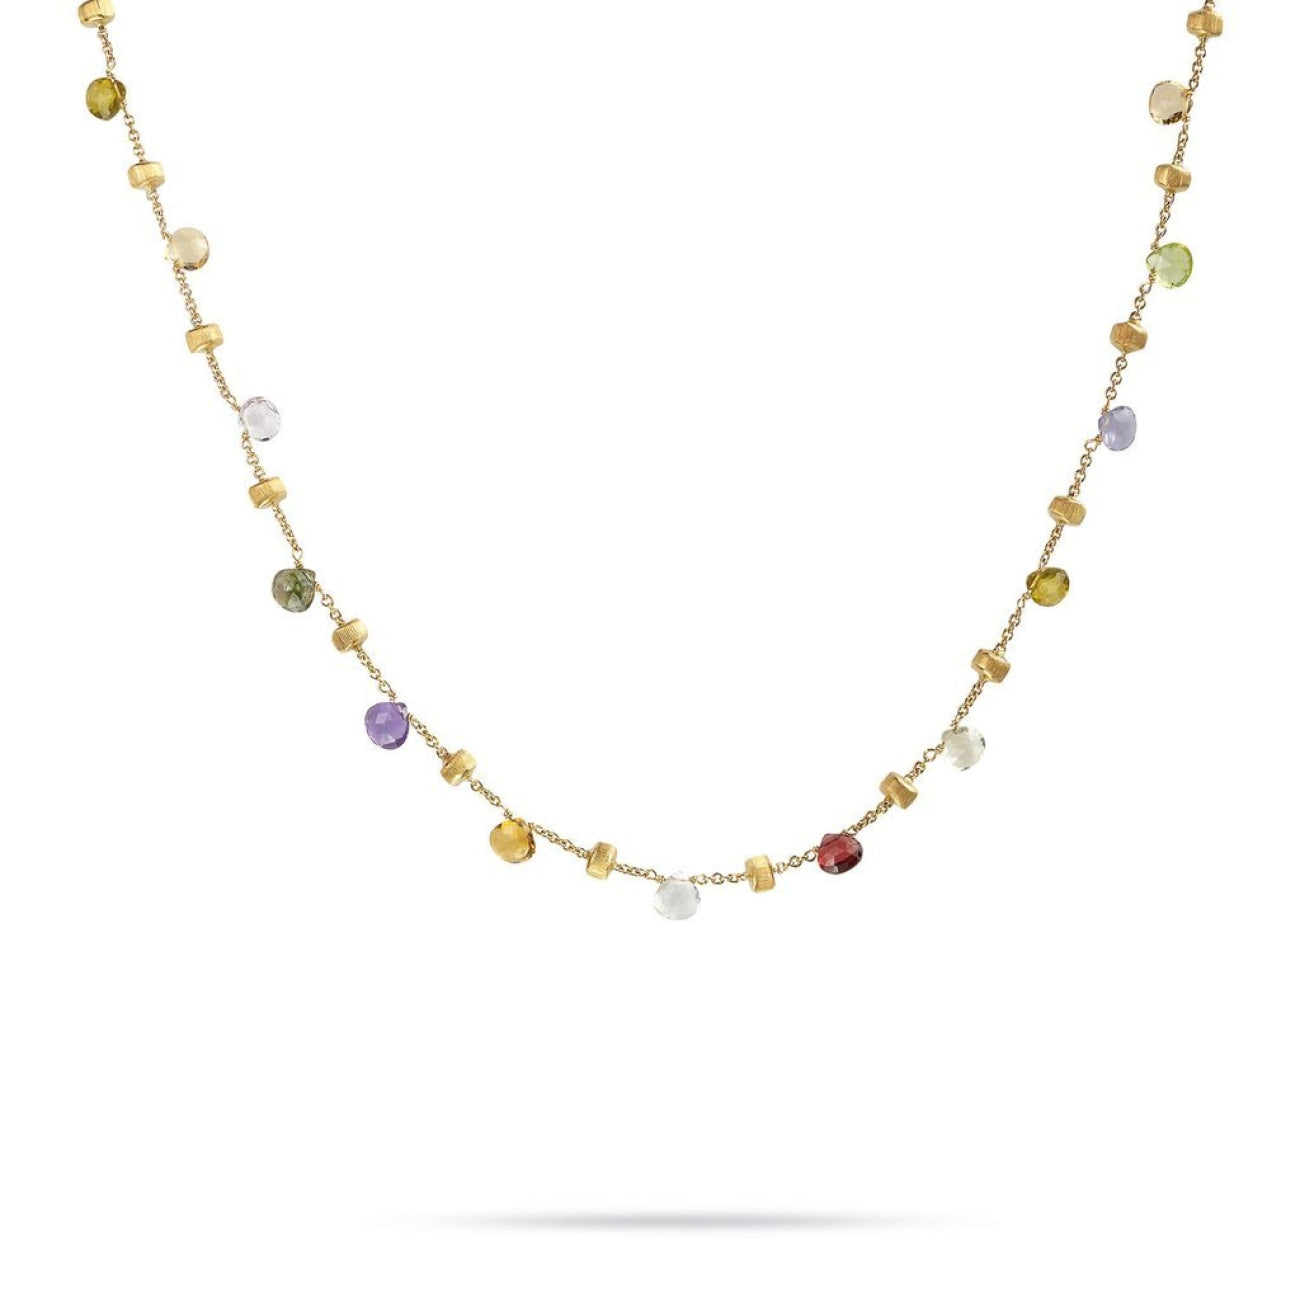 Marco Bicego Jewelry - 18K Yellow Gold & Mixed Stone Short Necklace | Manfredi Jewels